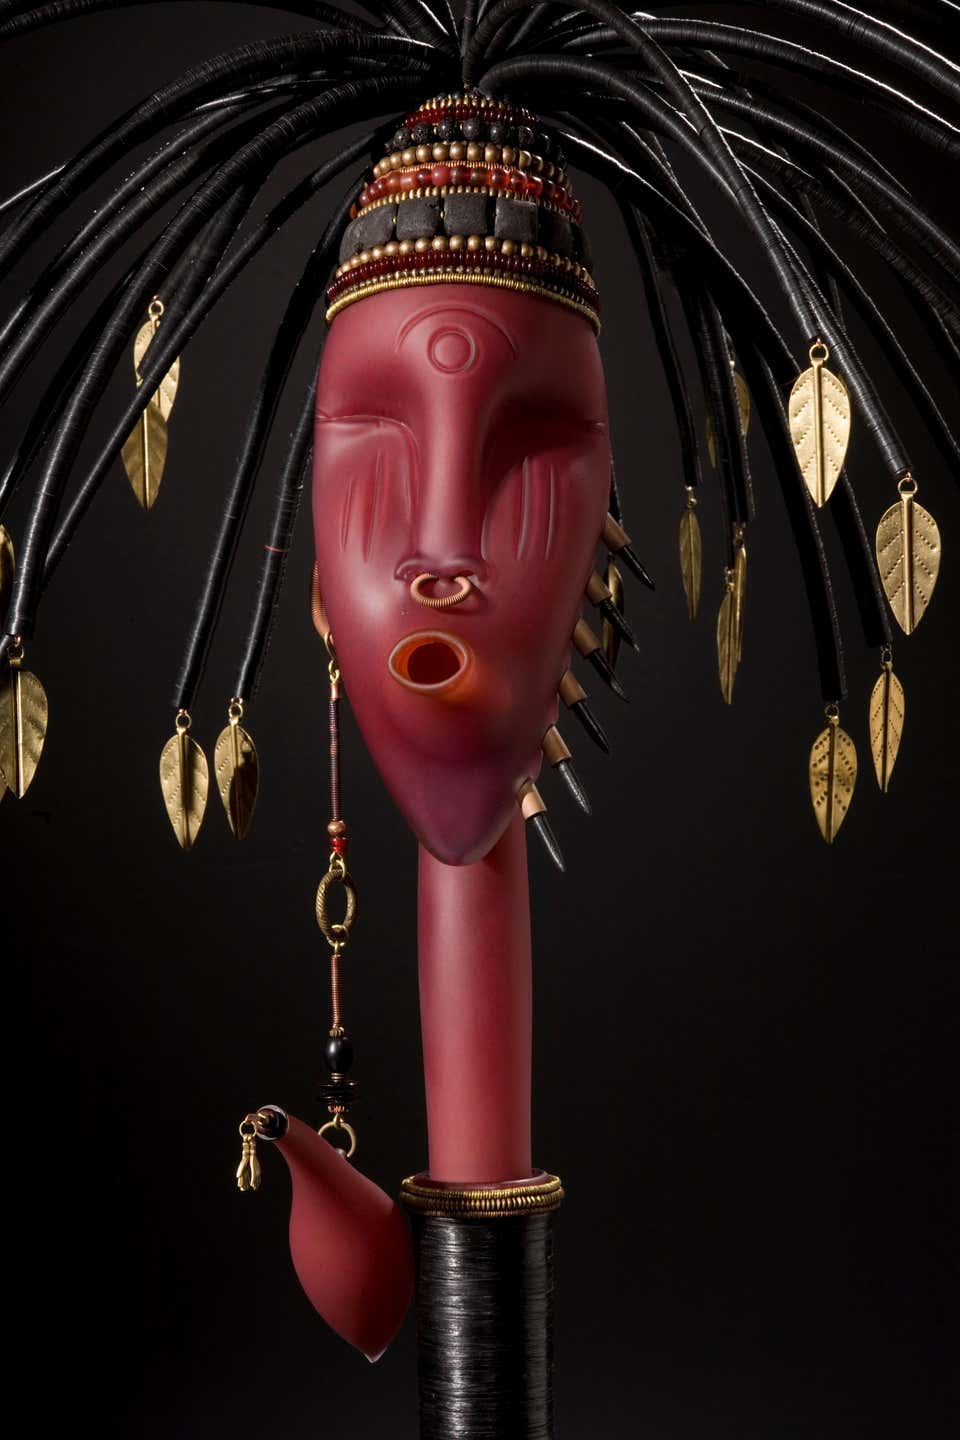 https://a.1stdibscdn.com/jenny-pohlman-and-sabrina-knowles-sculptures-kali-with-tear-catcher-head-pot-series-blown-sculpted-and-sandblasted-glass-for-sale-picture-5/a_972/1564592985712/Kali_Head_neck_front_master.jpg?disable=upscale&auto=webp&quality=60&width=960